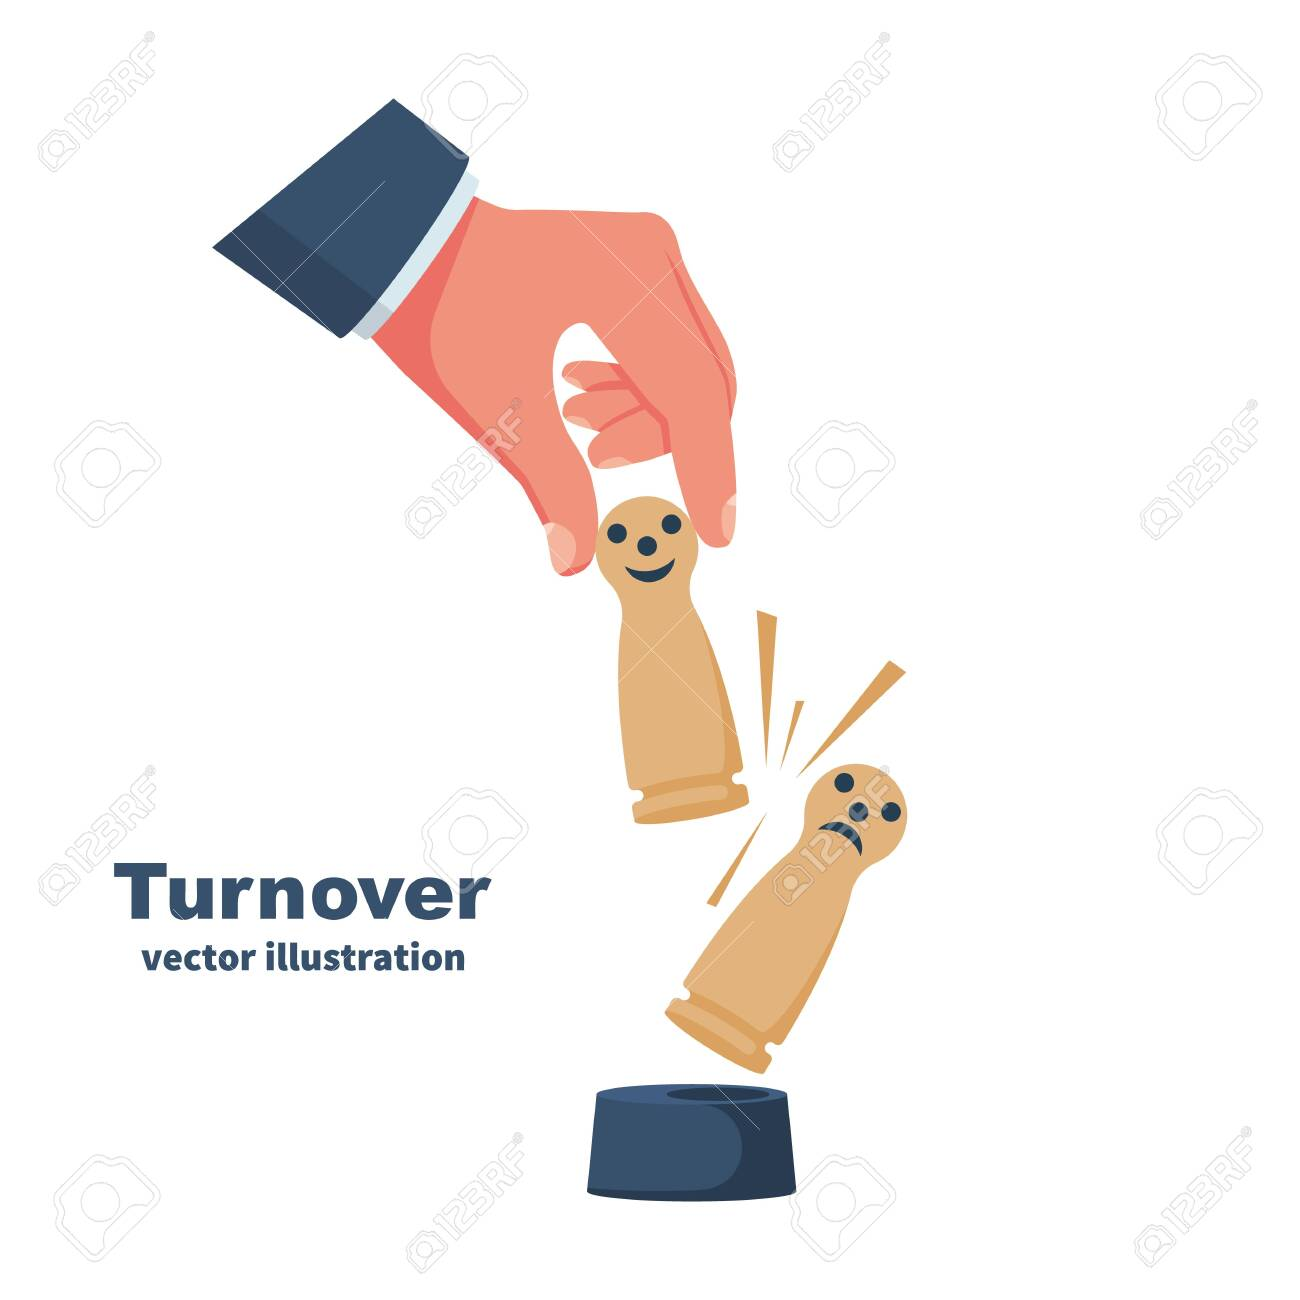 Replacing the wooden figure as symbol turnover  Firing an employee,